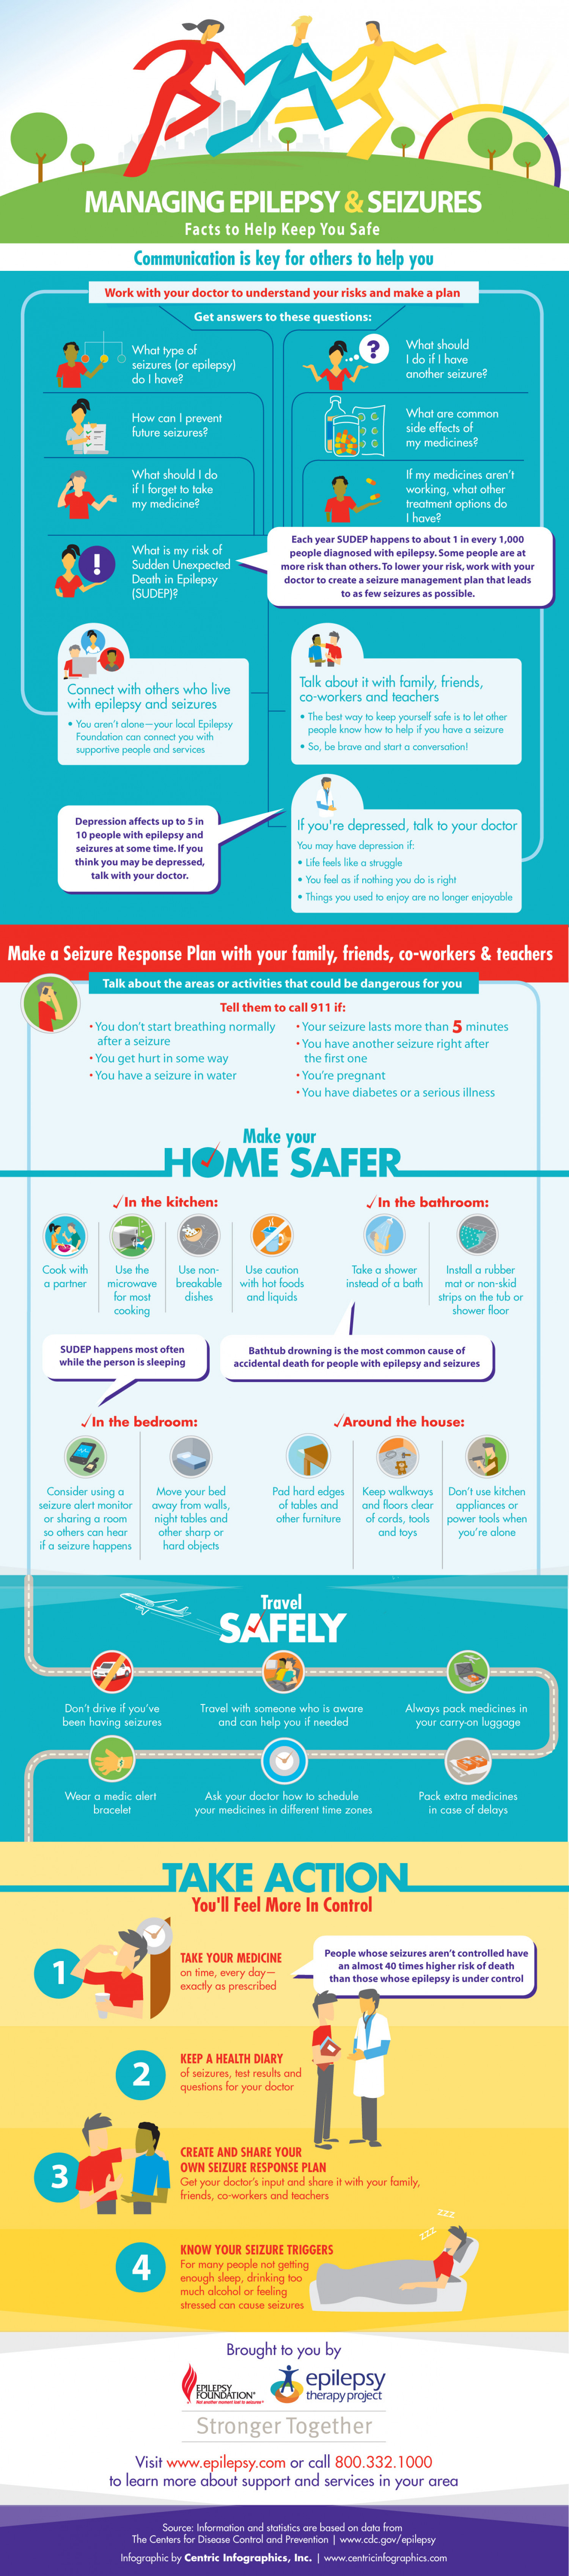 Nationwide Initiative Aims to Help People Living with Epilepsy Manage Seizures and Stay Safe Infographic